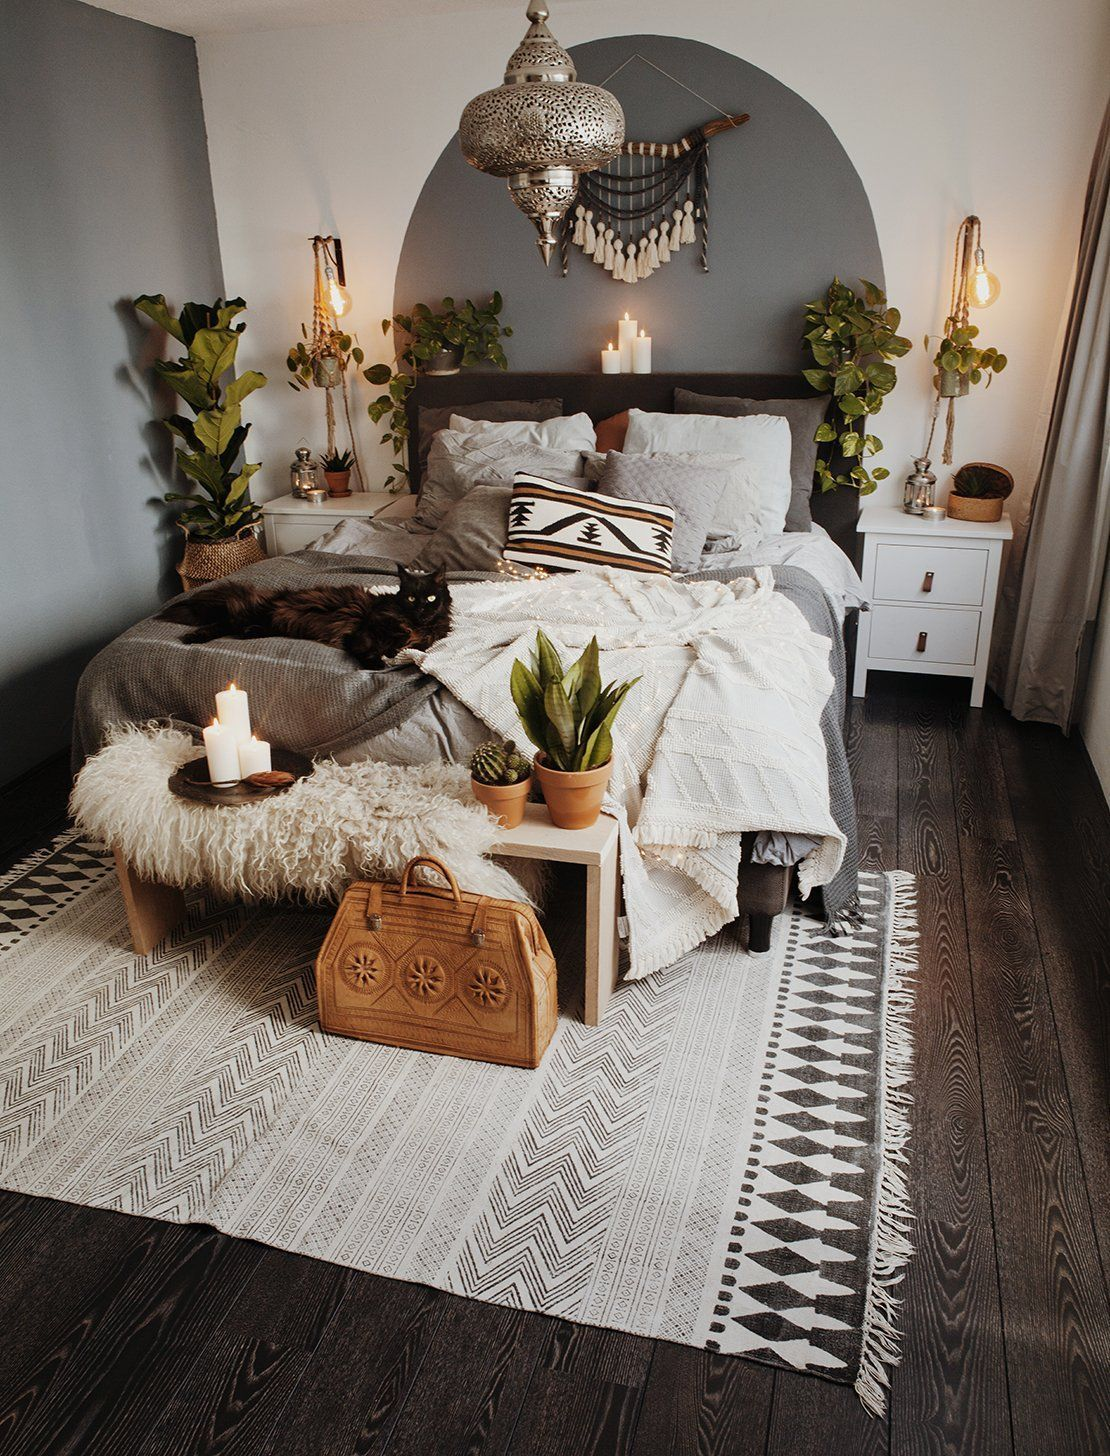 I Love This Bedroom With All Of Its Bohemian Accents So Inviting Especially The Little Black Kitty On The Bed